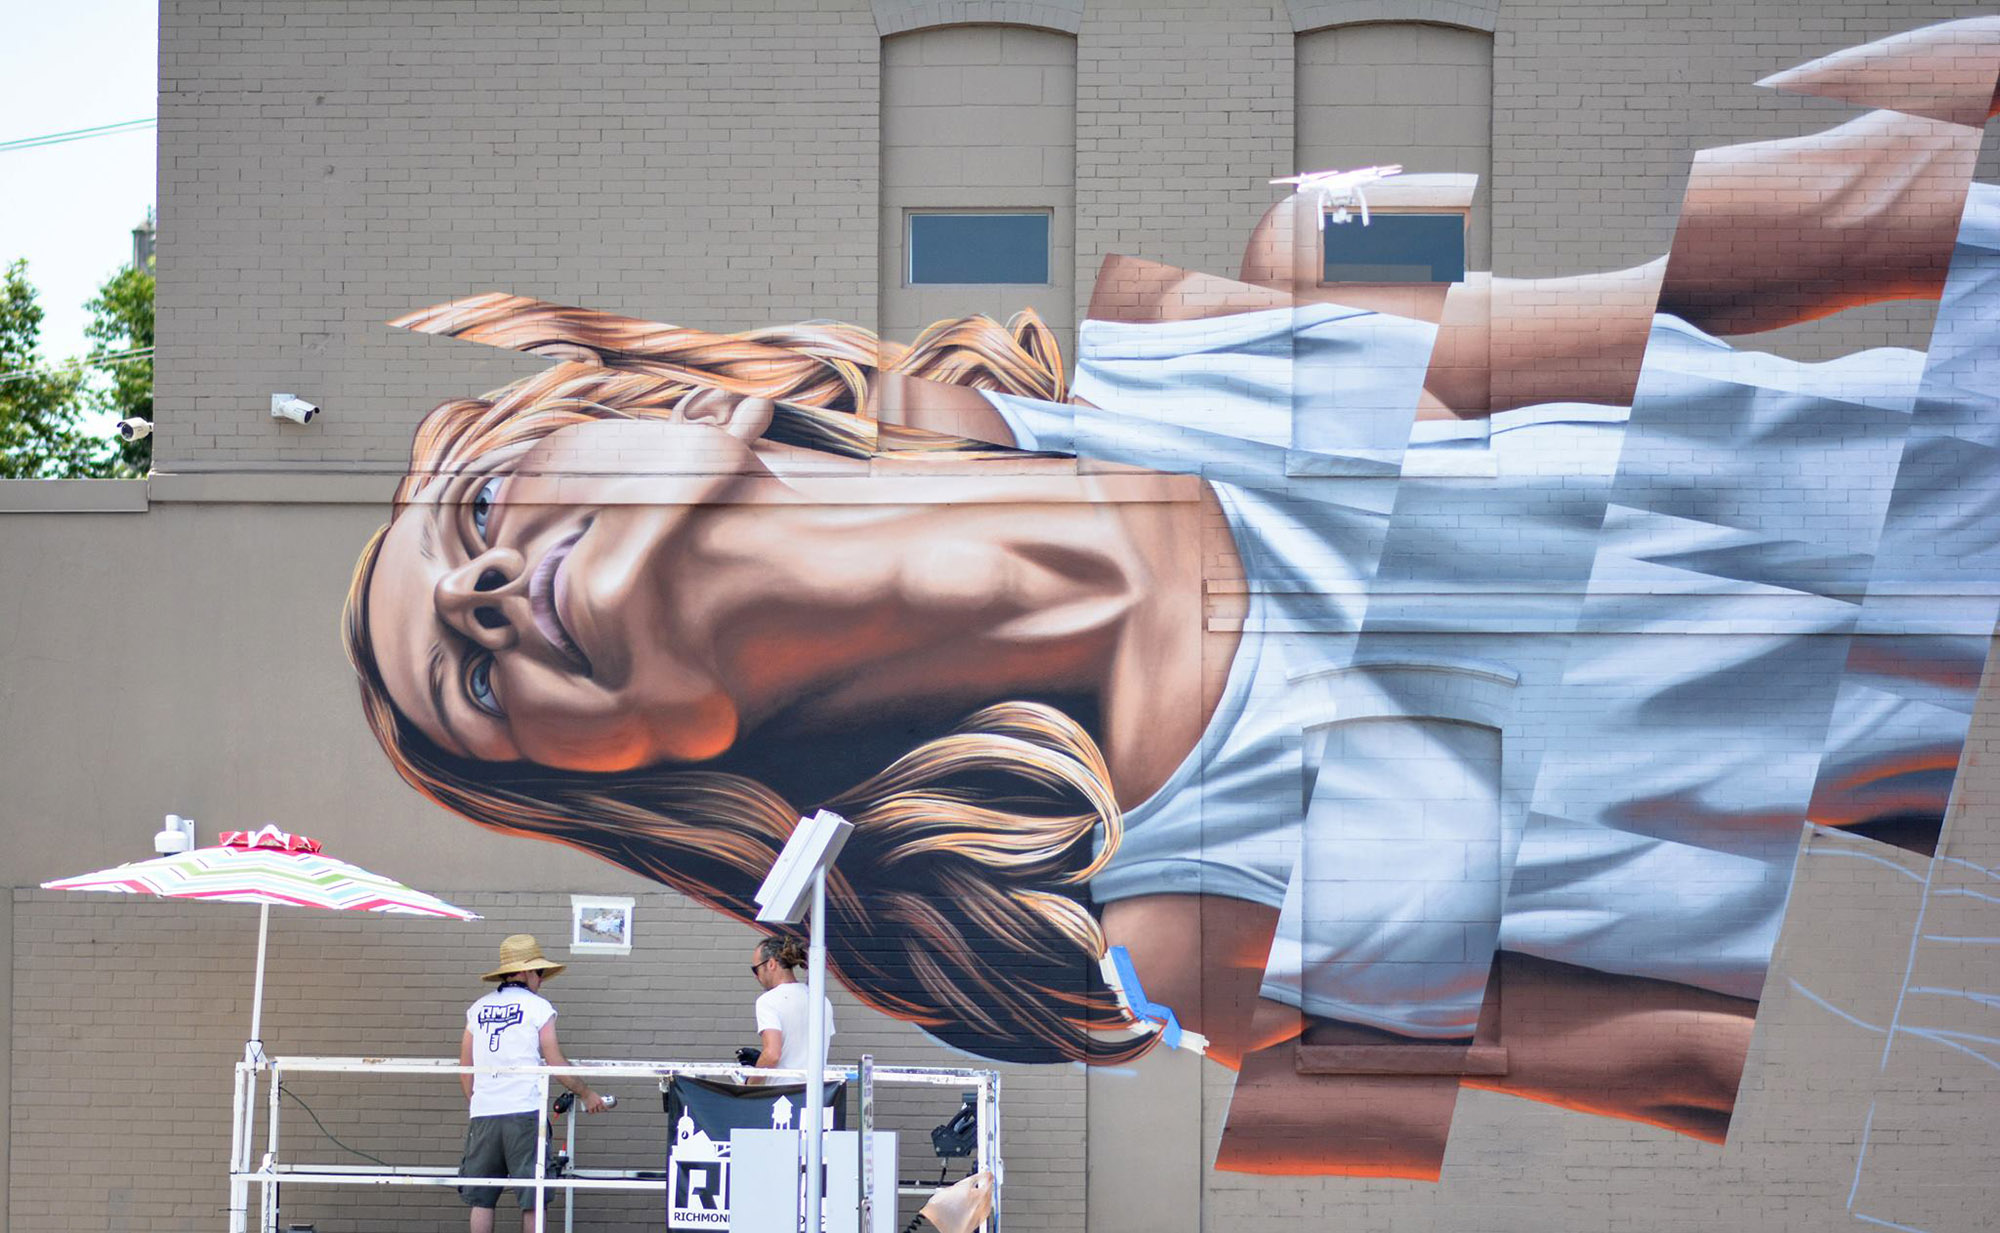 richmond street art by james bullough